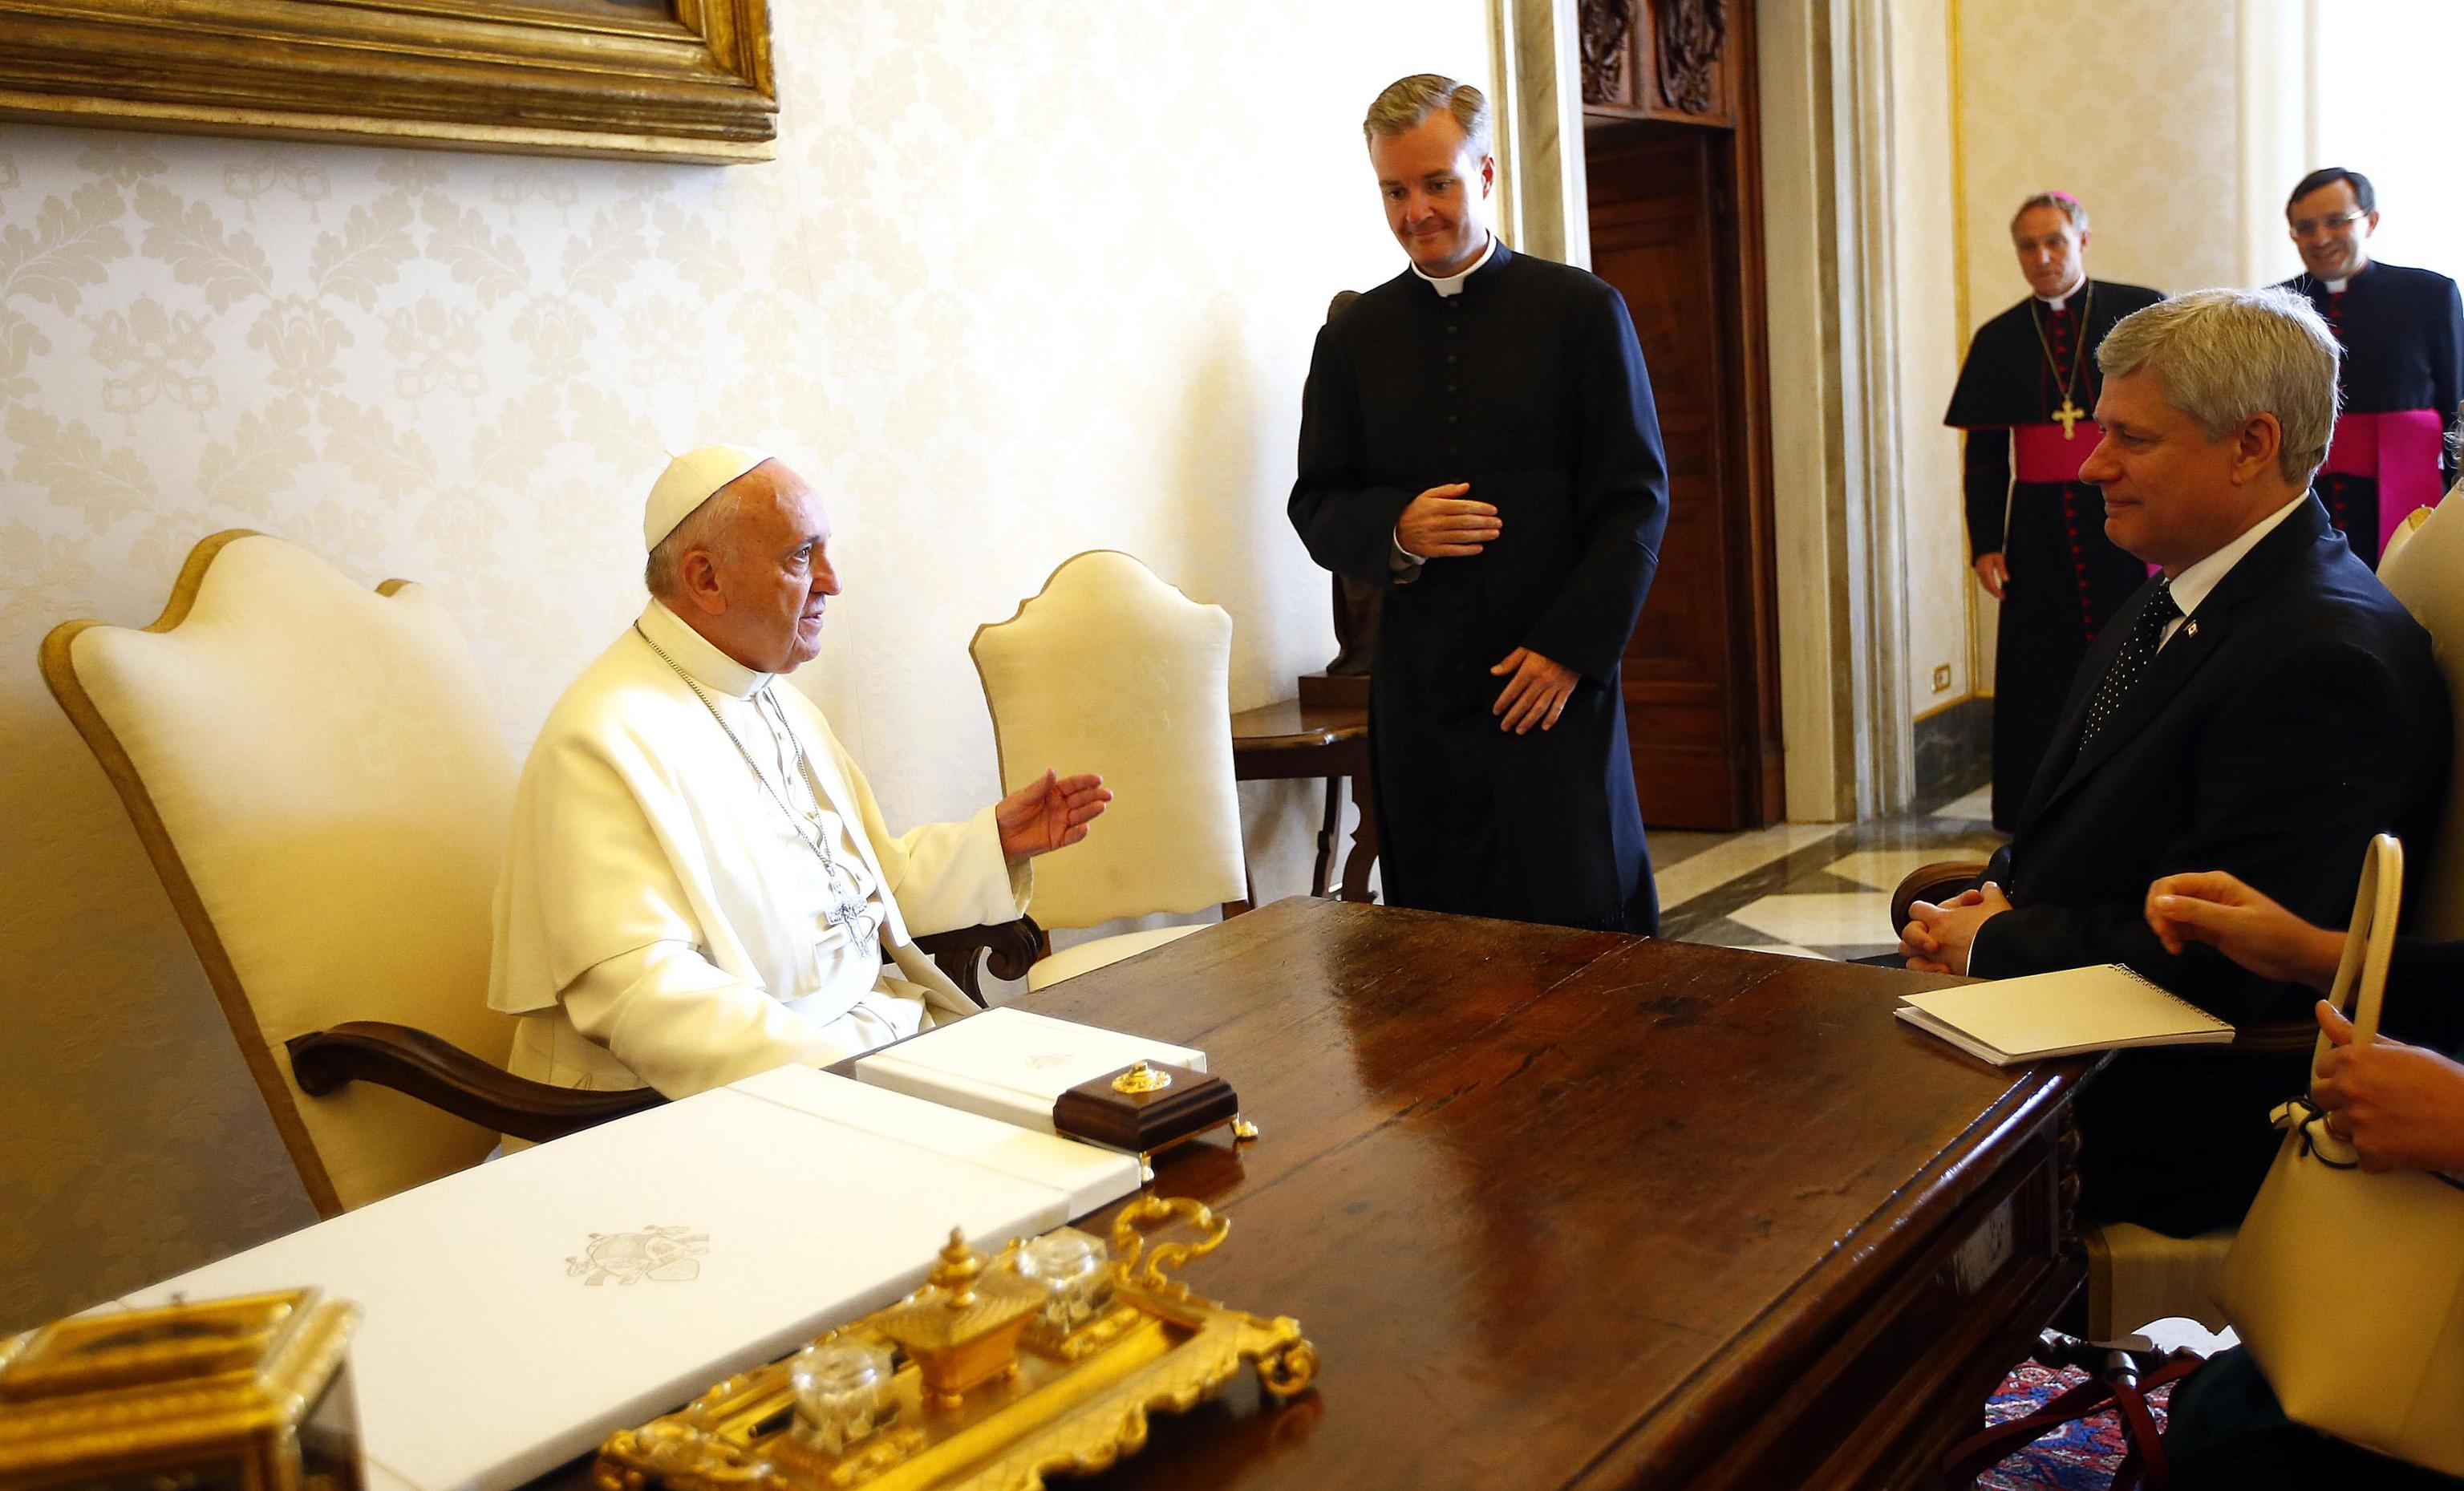 Pope Francis meets Canada's Prime Minister Stephen Harper during a private audience at the Vatican City